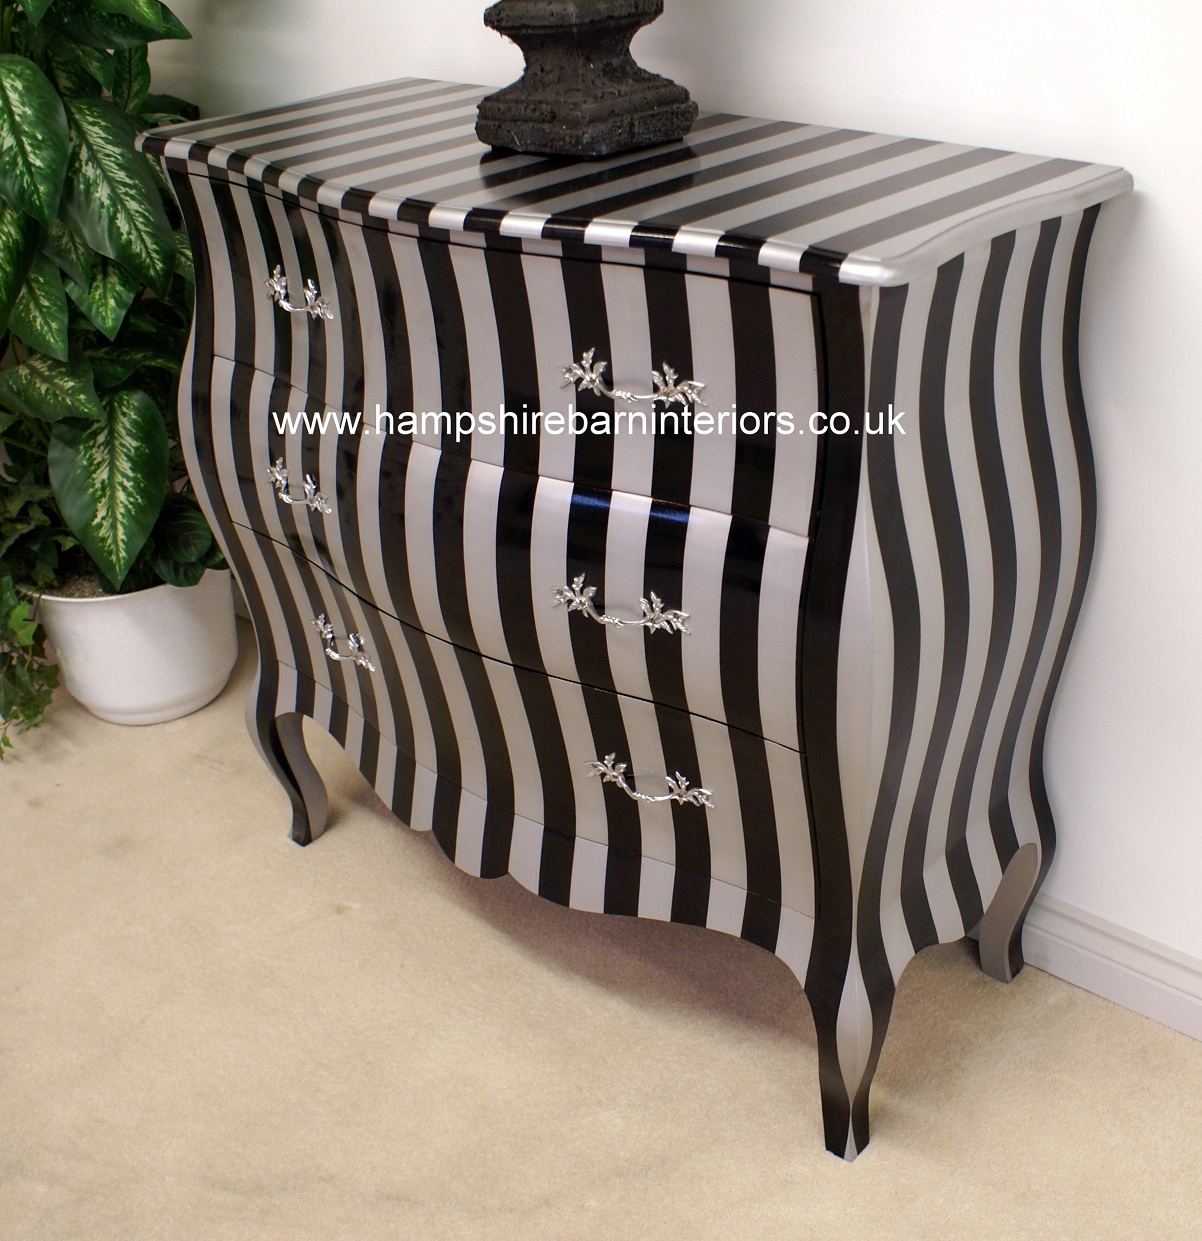 A BLACK Amp SILVER STRIPE BOMBE CHEST OF 3 DRAWERS